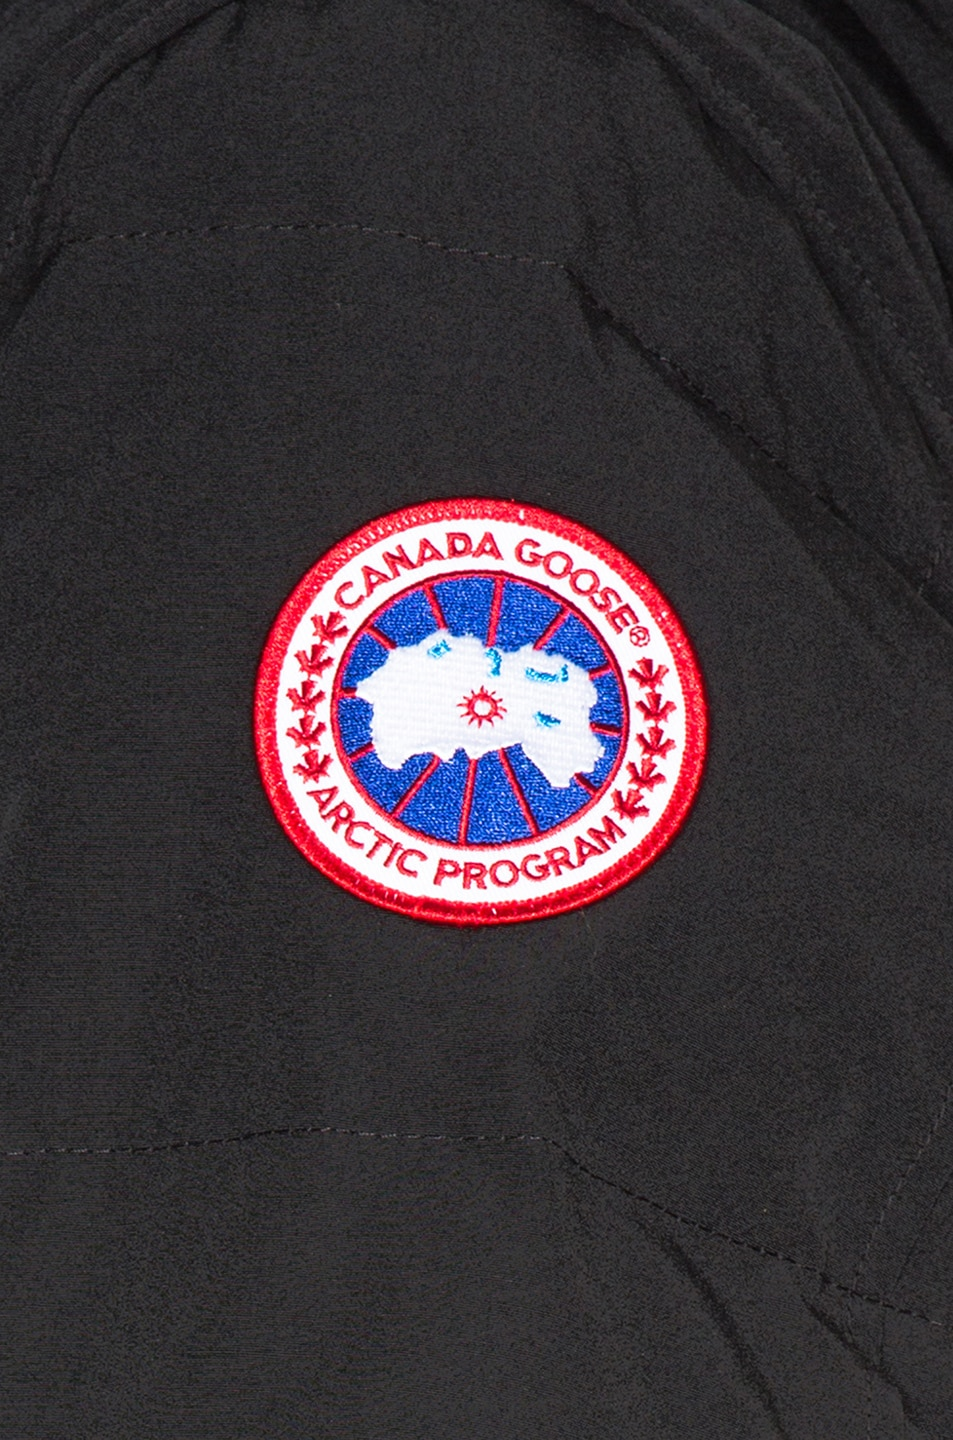 Image 7 of Canada Goose Shelburne Parka in Black